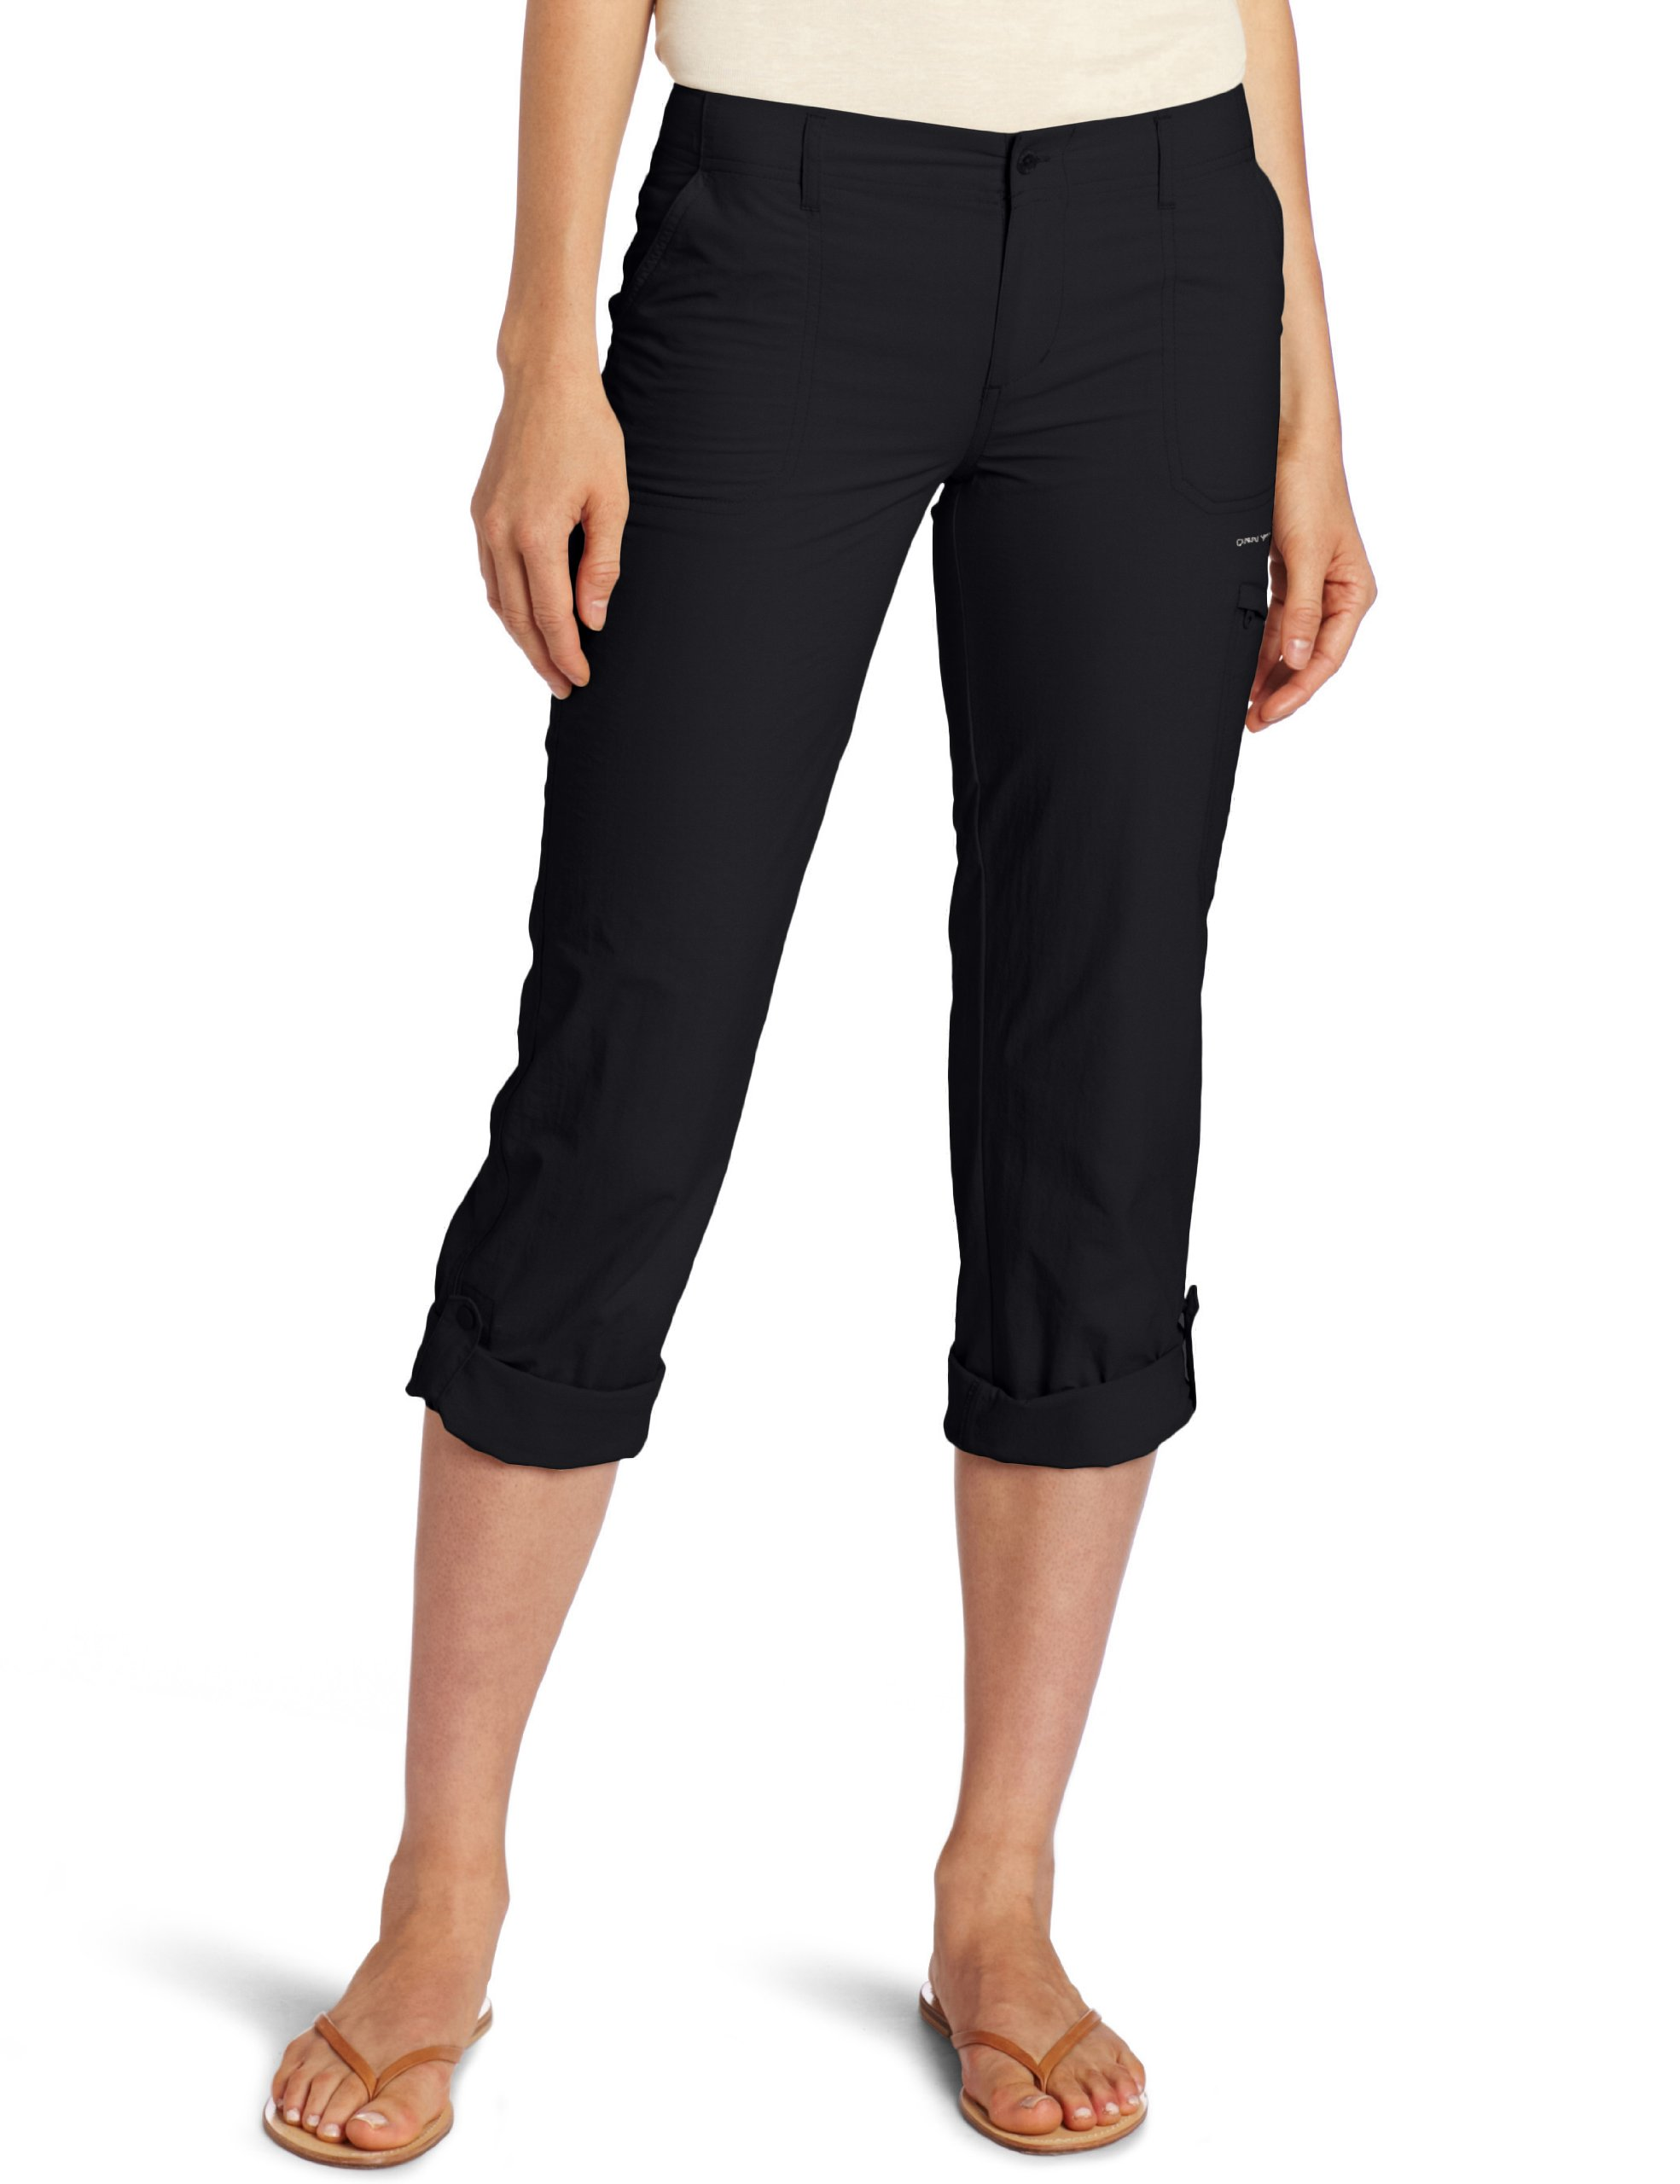 Columbia Women's Full Leg Roll-Up Aruba Pant, 6, Black by Columbia